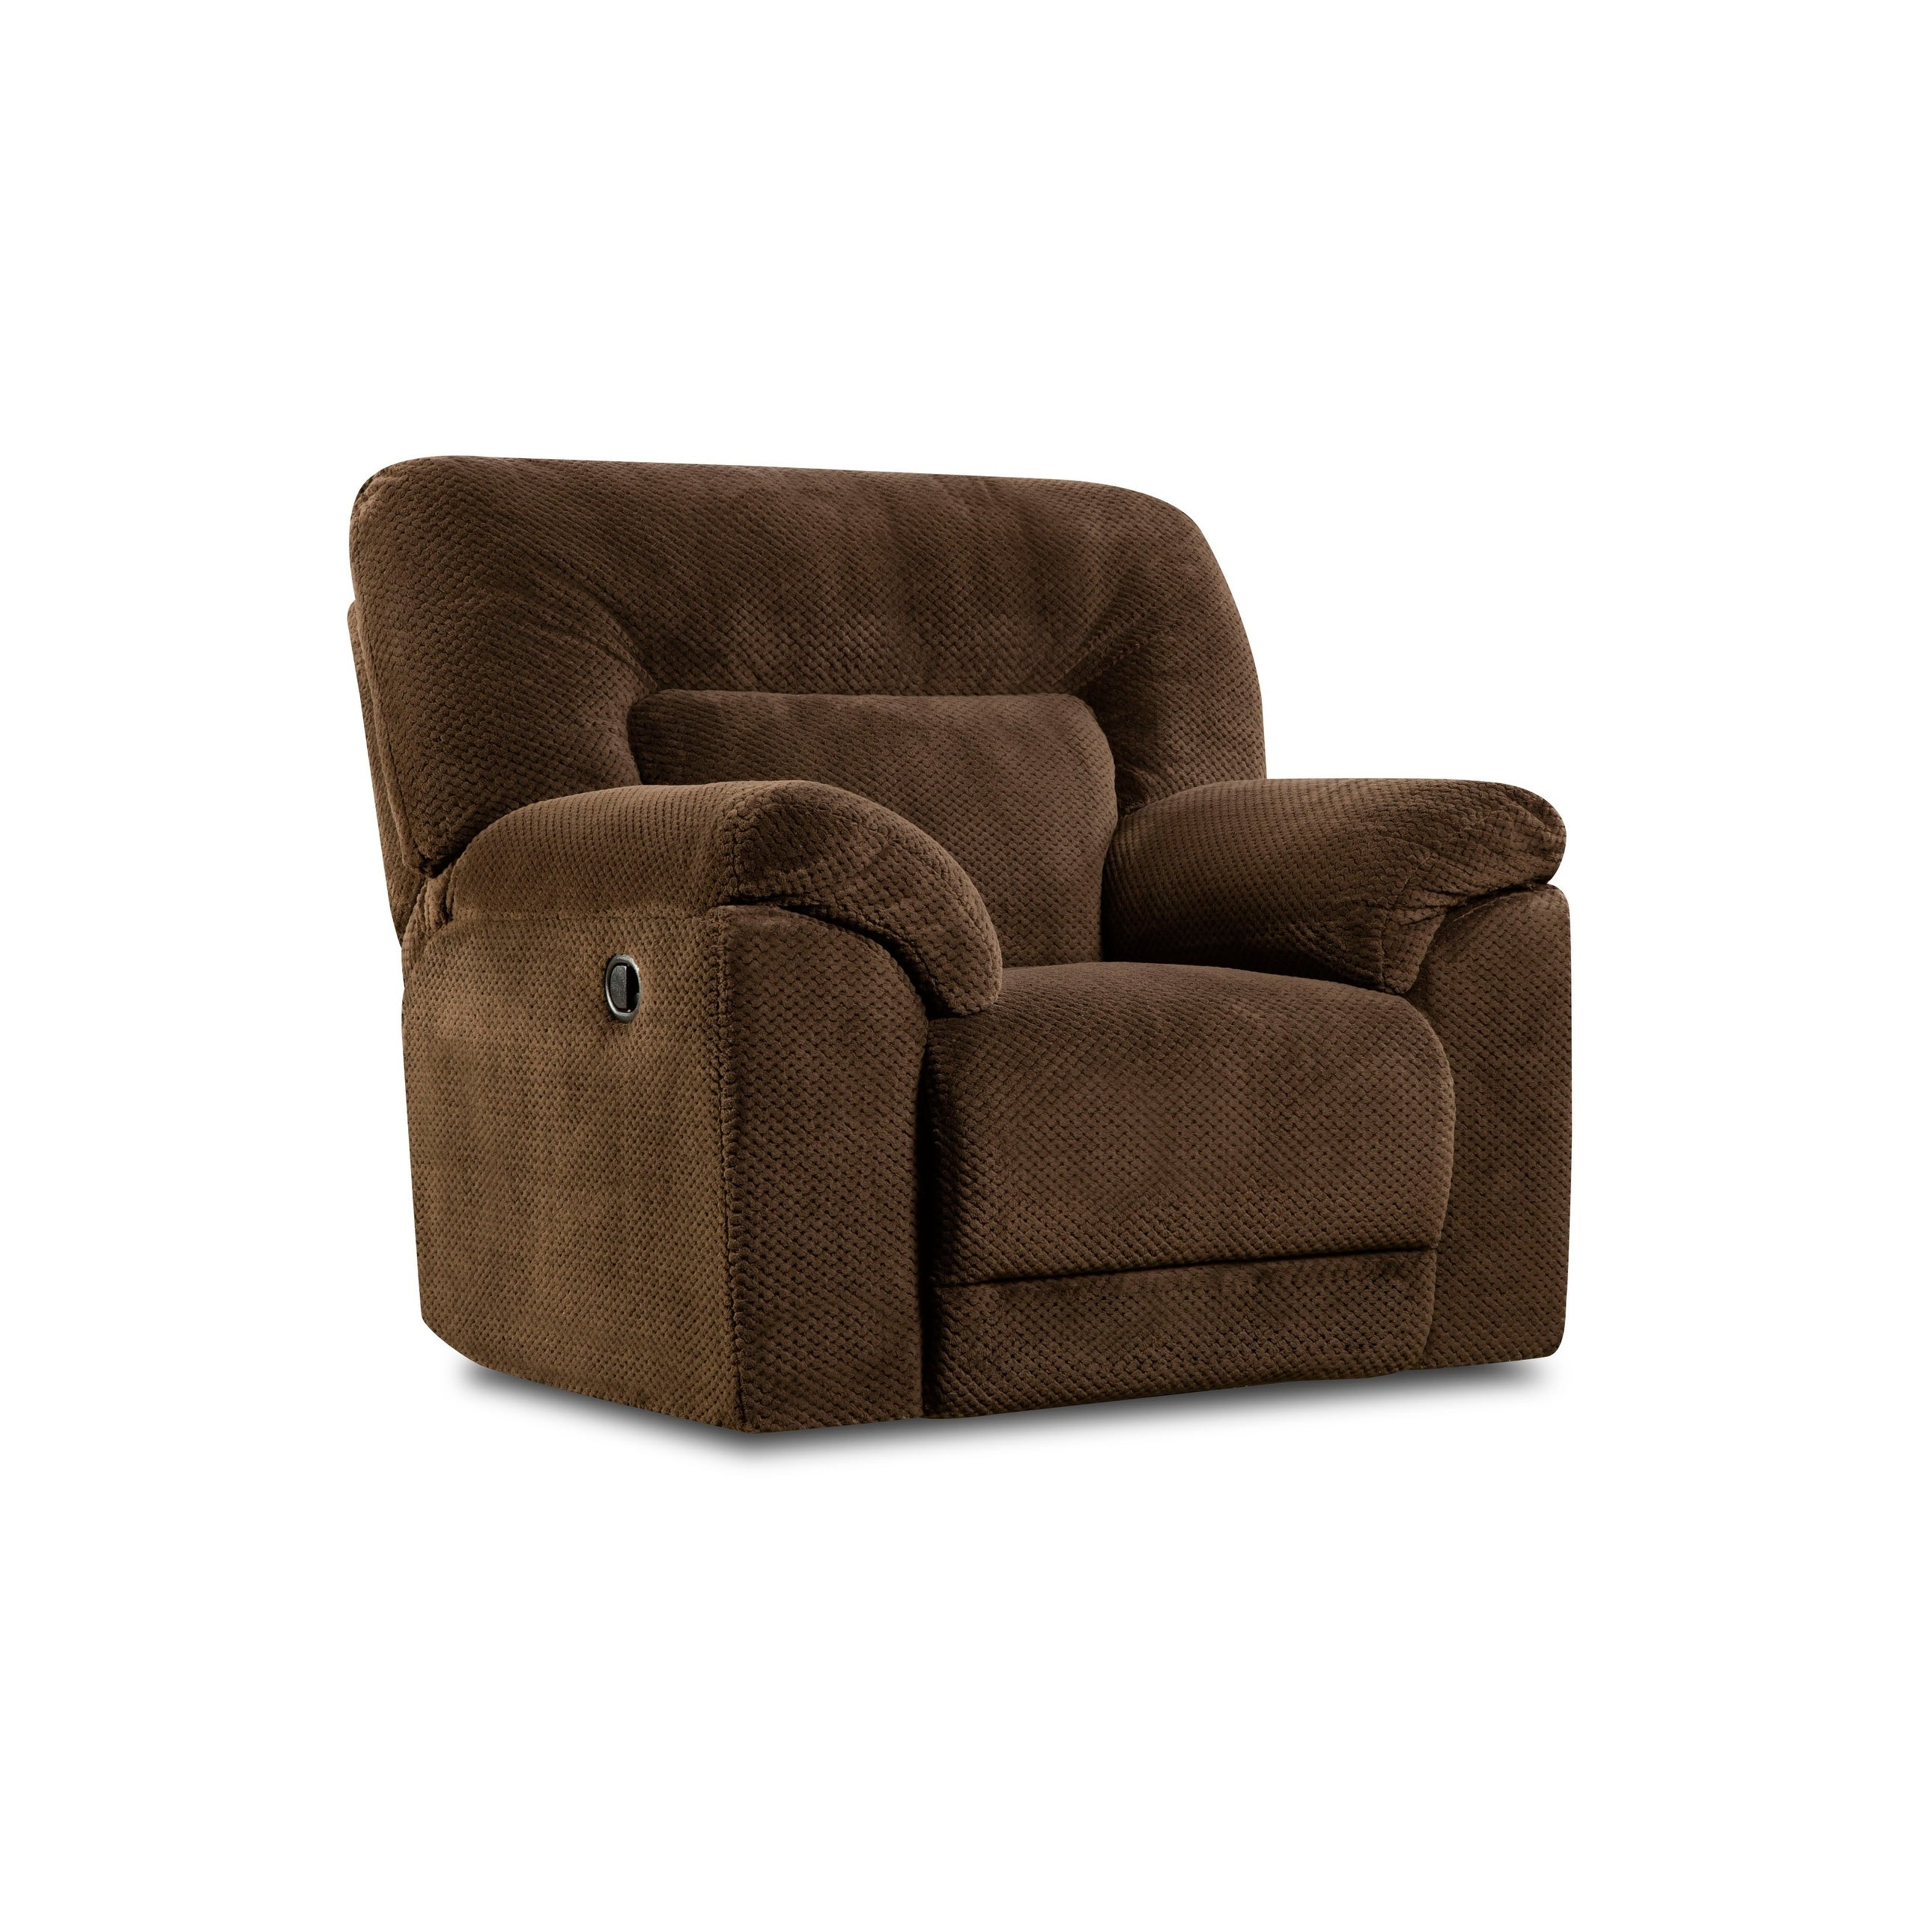 Surprising Simmons Upholstery Madeline Chocolate Swivel Glider Recliner Ocoug Best Dining Table And Chair Ideas Images Ocougorg